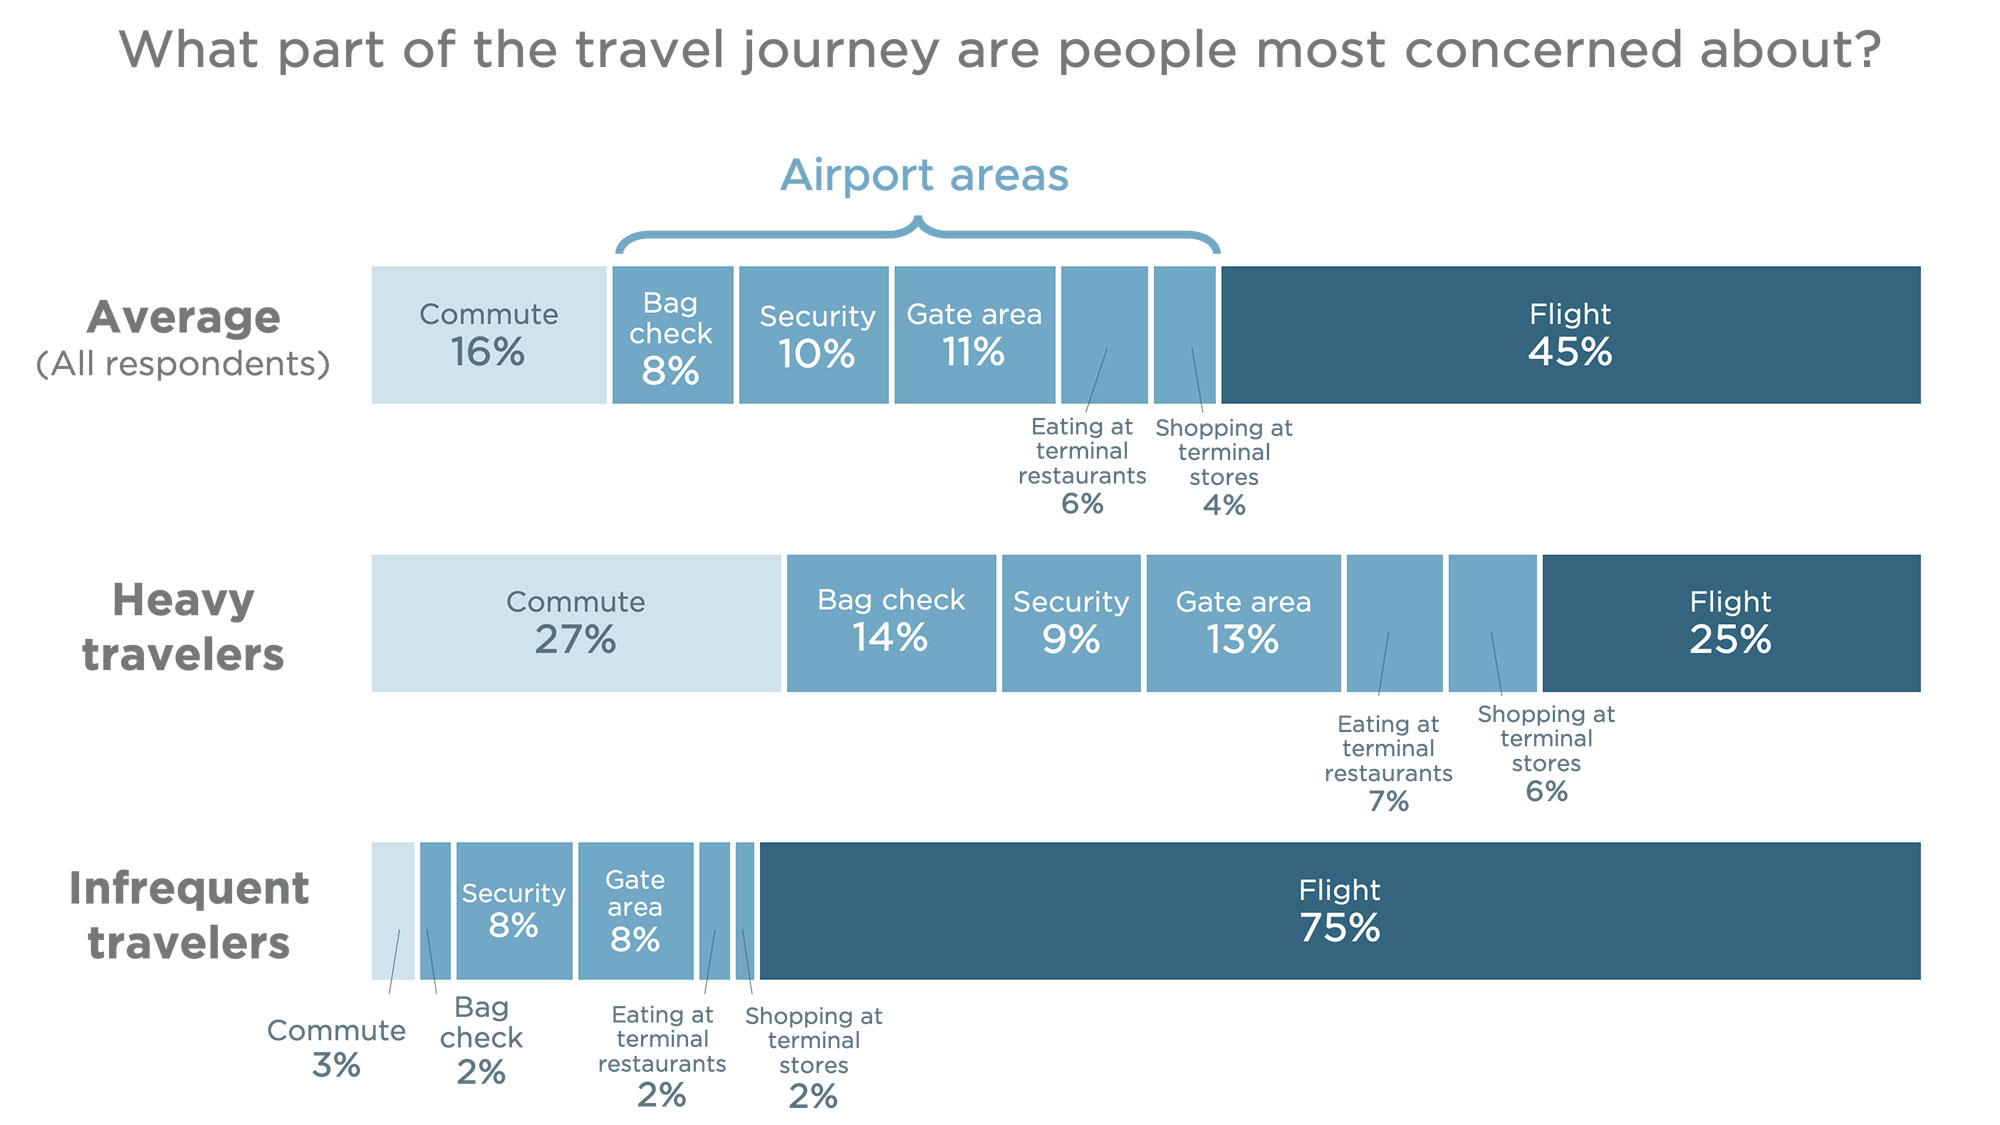 A graph shows what part of the travel journey people are most concerned about.